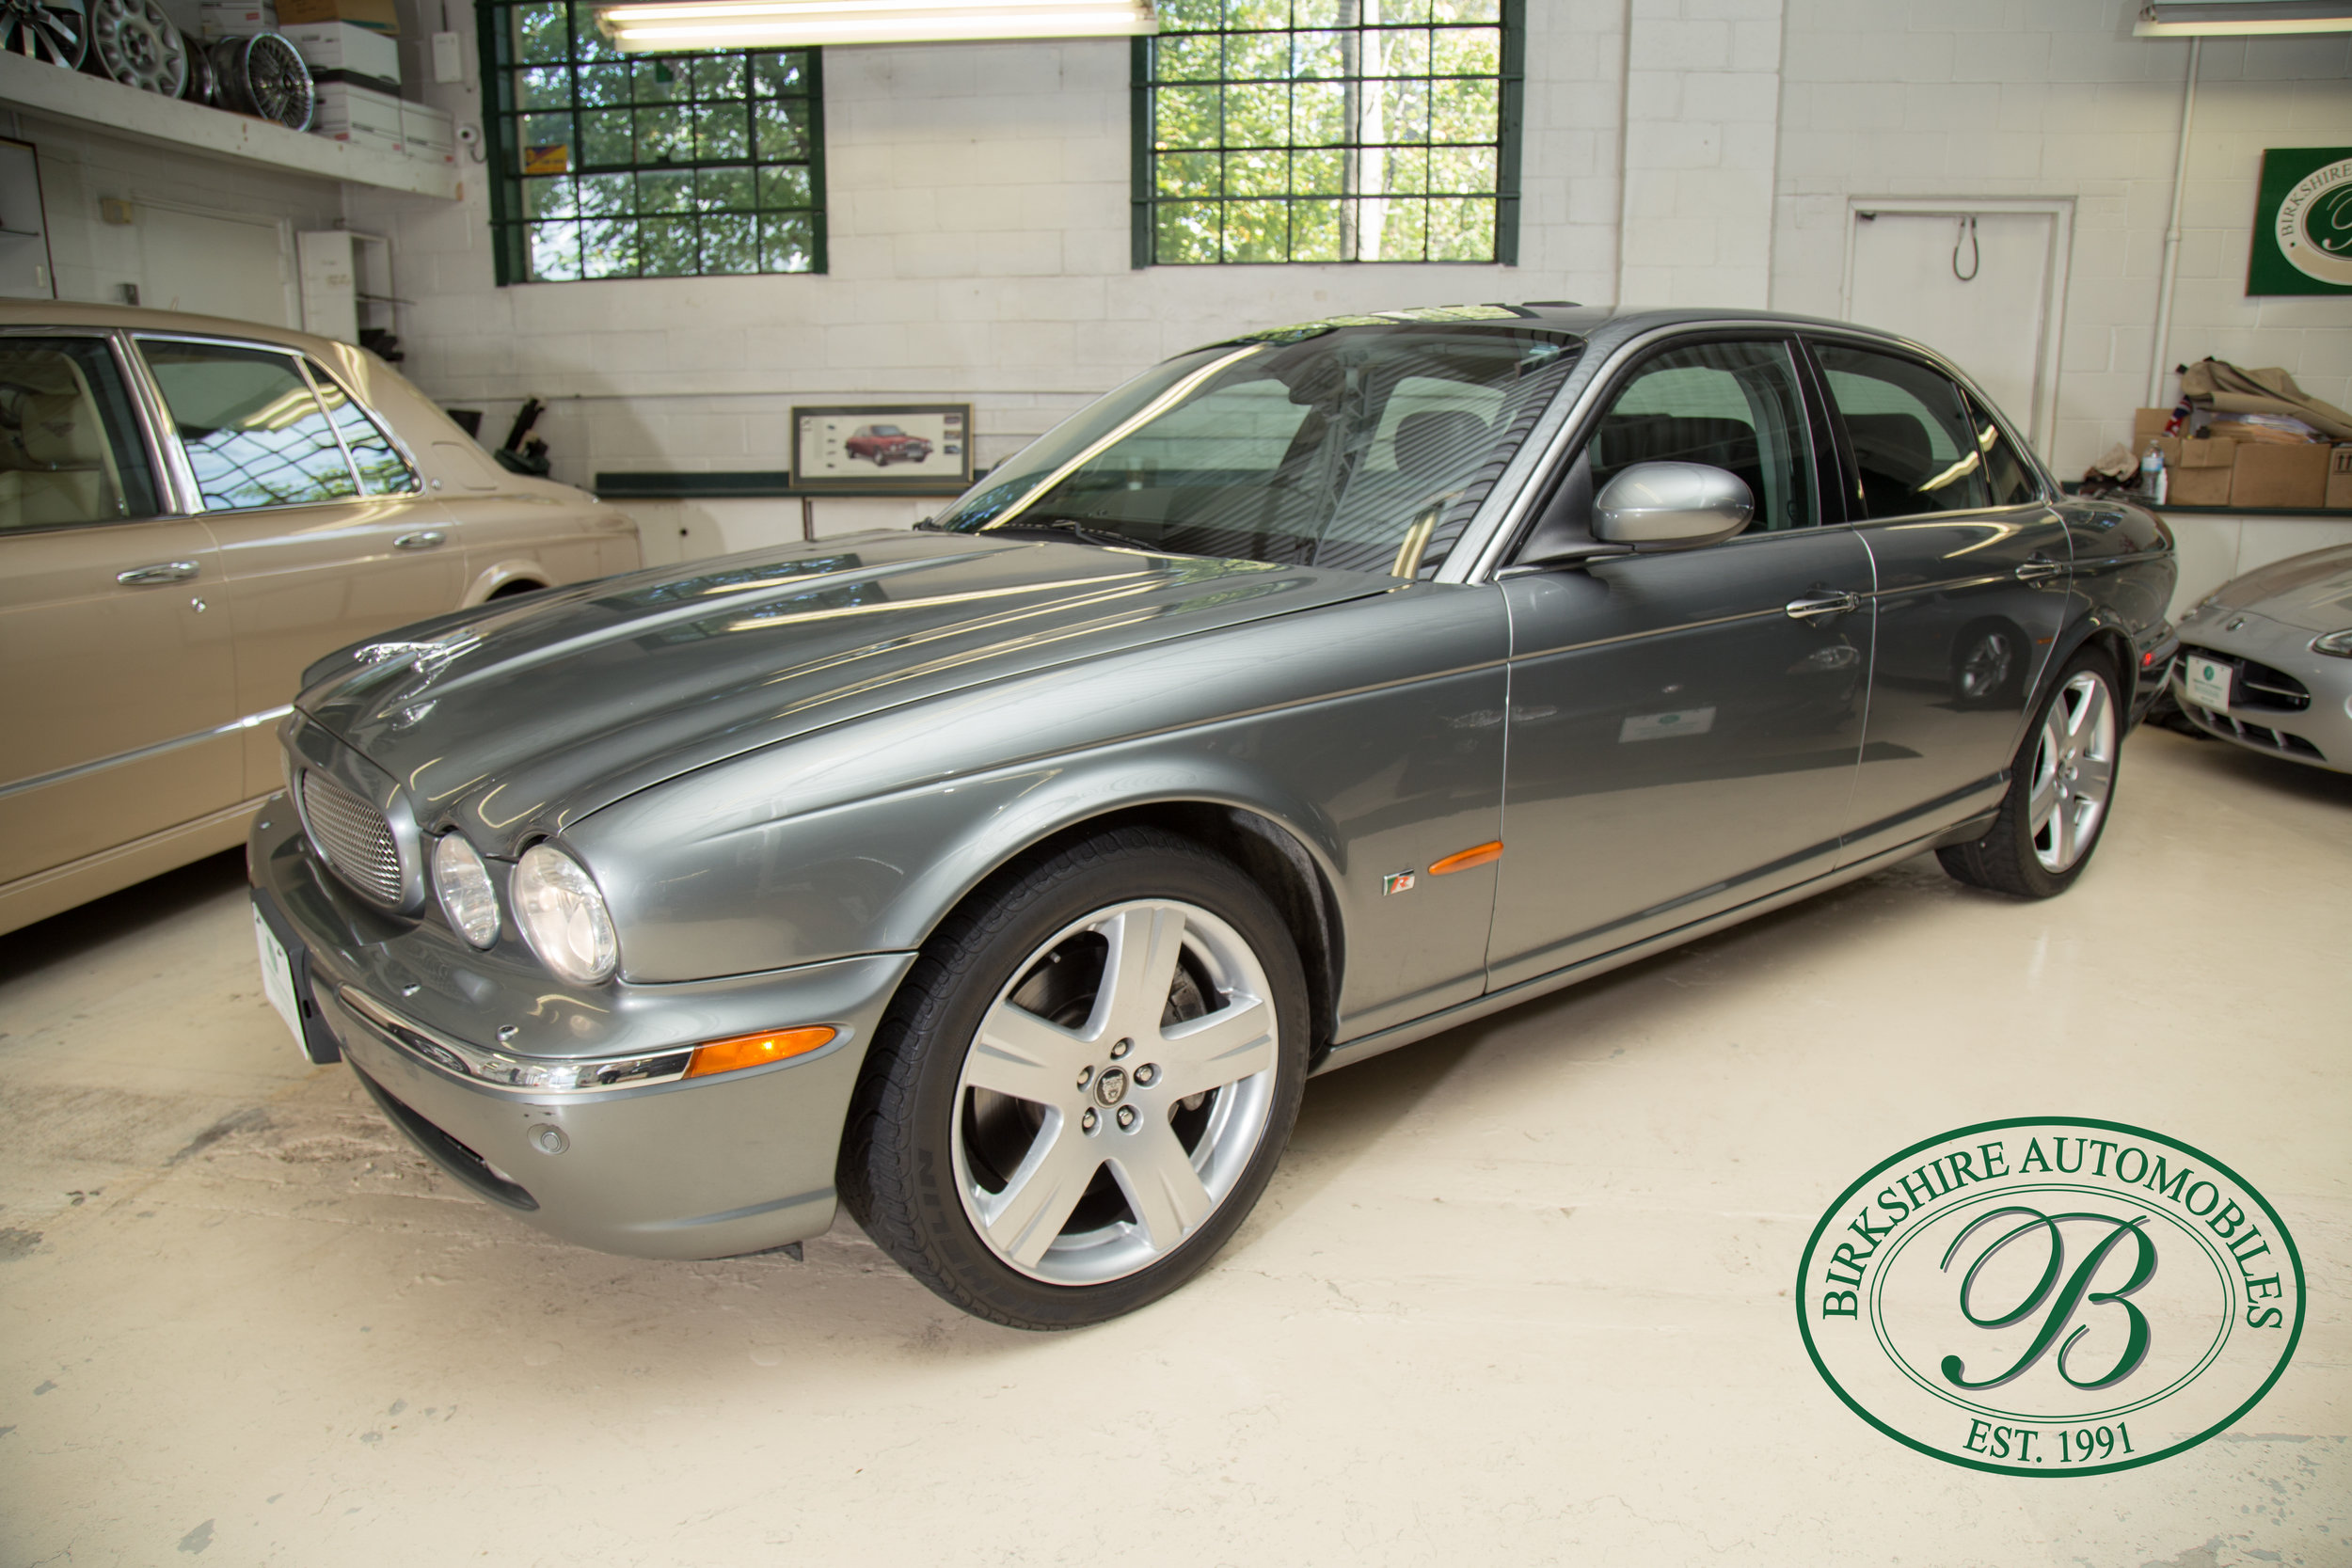 2006 Jaguar XJR - This stunning Jaguar XJR is powered by a supercharged 4.2-litre V8 boasting 400 horsepower and buckets full of low-end torque.